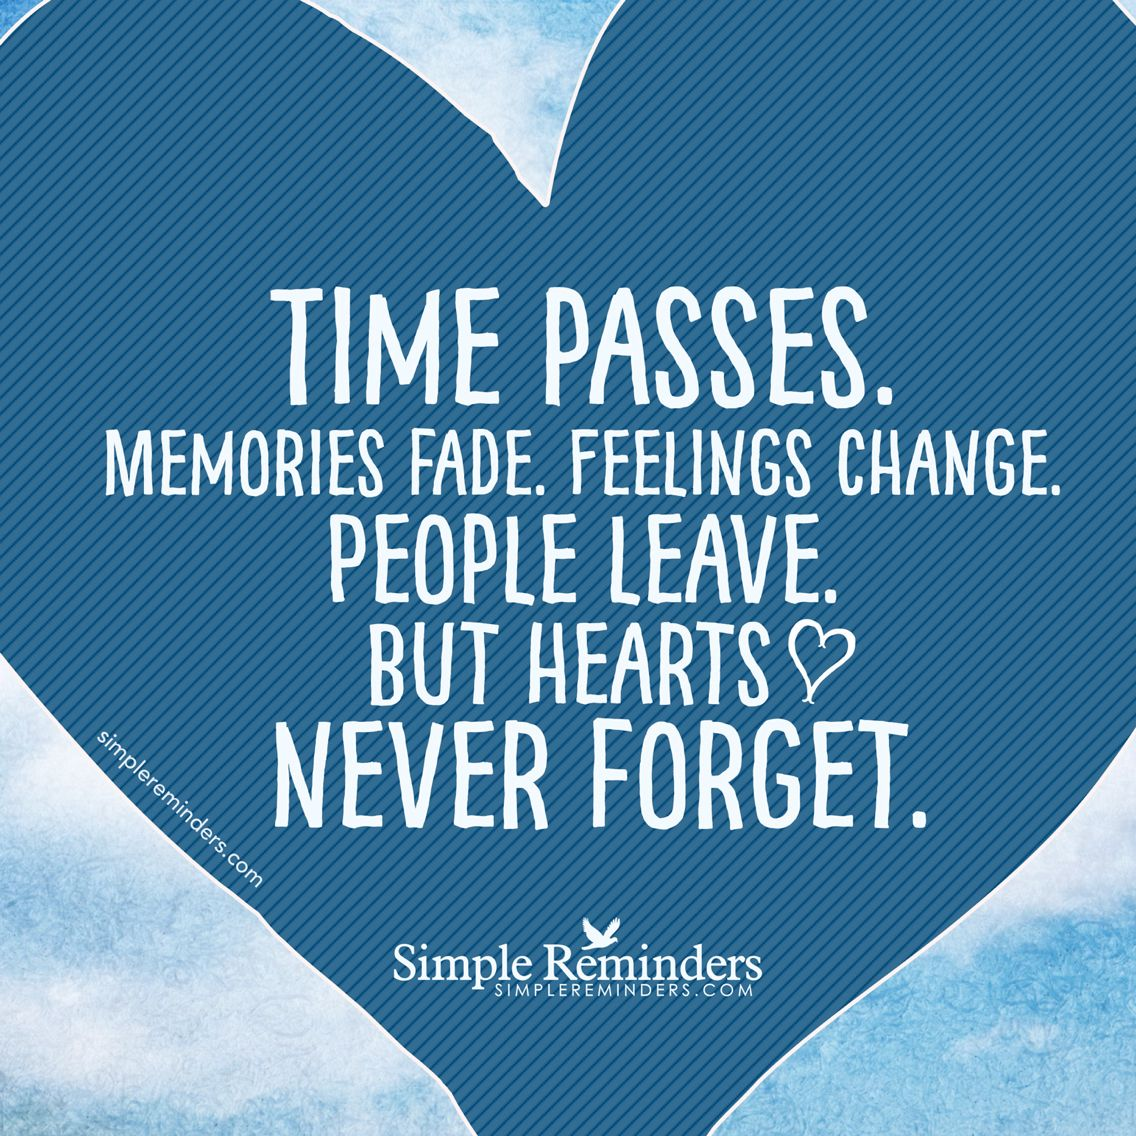 Quotes About Time Passing Magnificent Simple Reminders  Quotes ↠ Simple Reminders  Pinterest  Simple